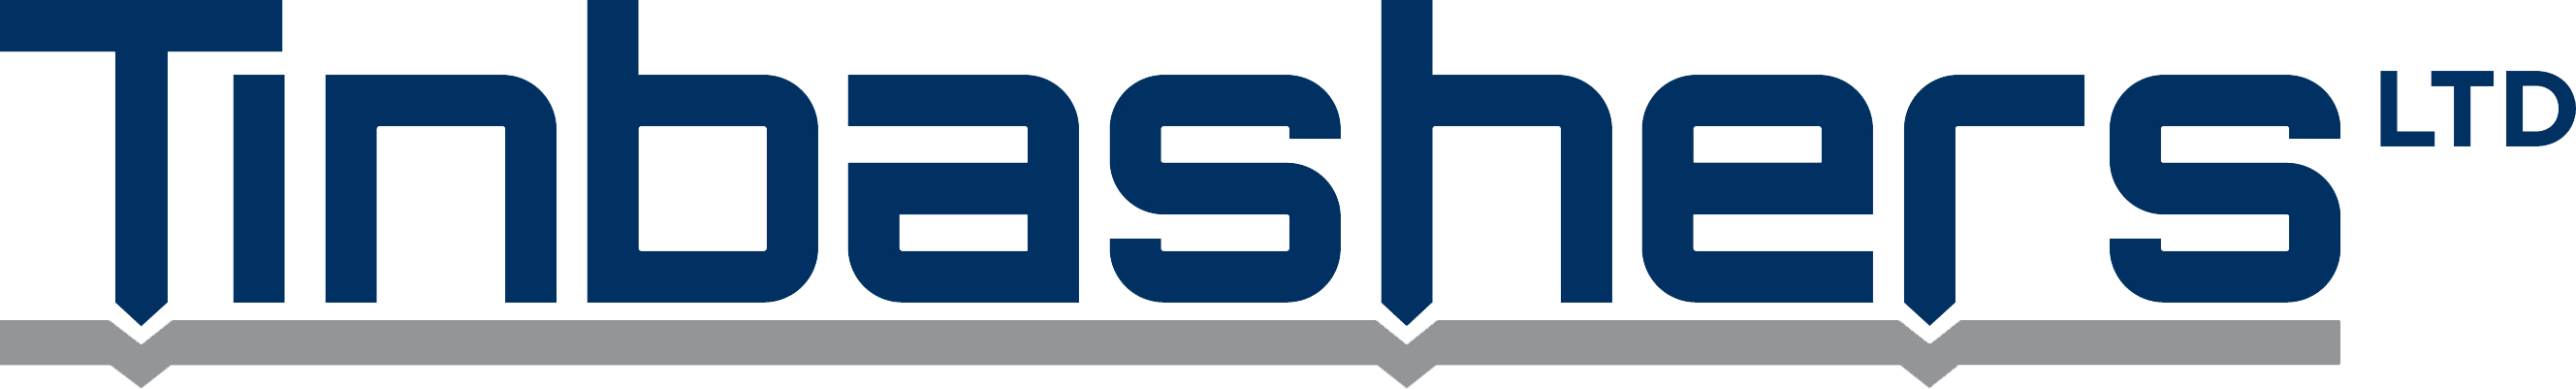 Tinbashers Machinery Logo